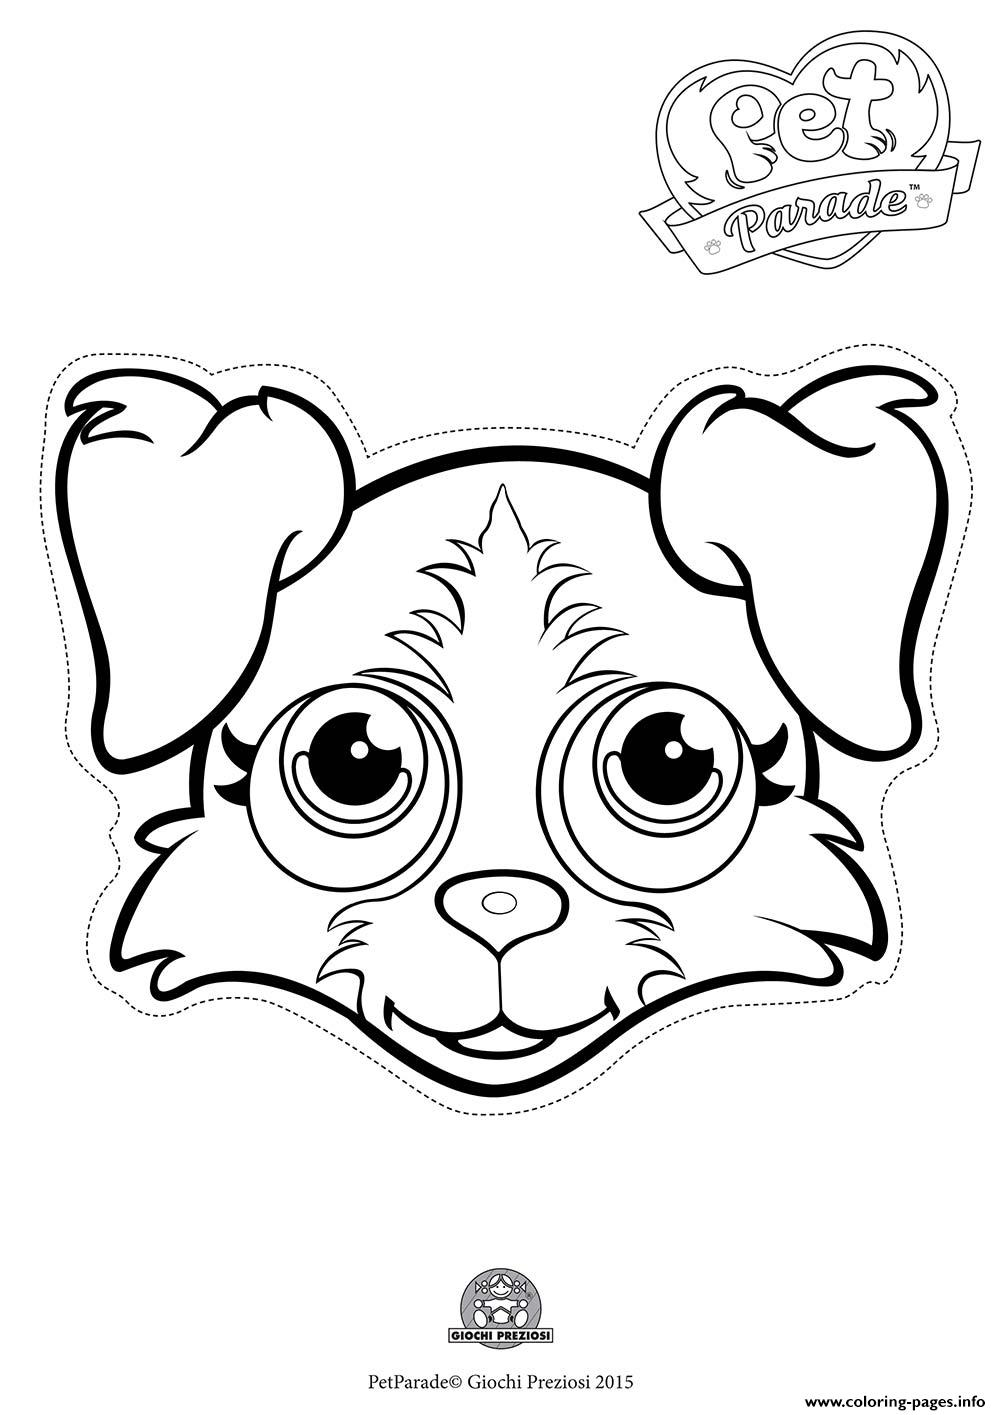 Parade coloring pages to print for adults - Pet Parade Cute Dog Border Collie 2 Coloring Pages Print Download 308 Prints